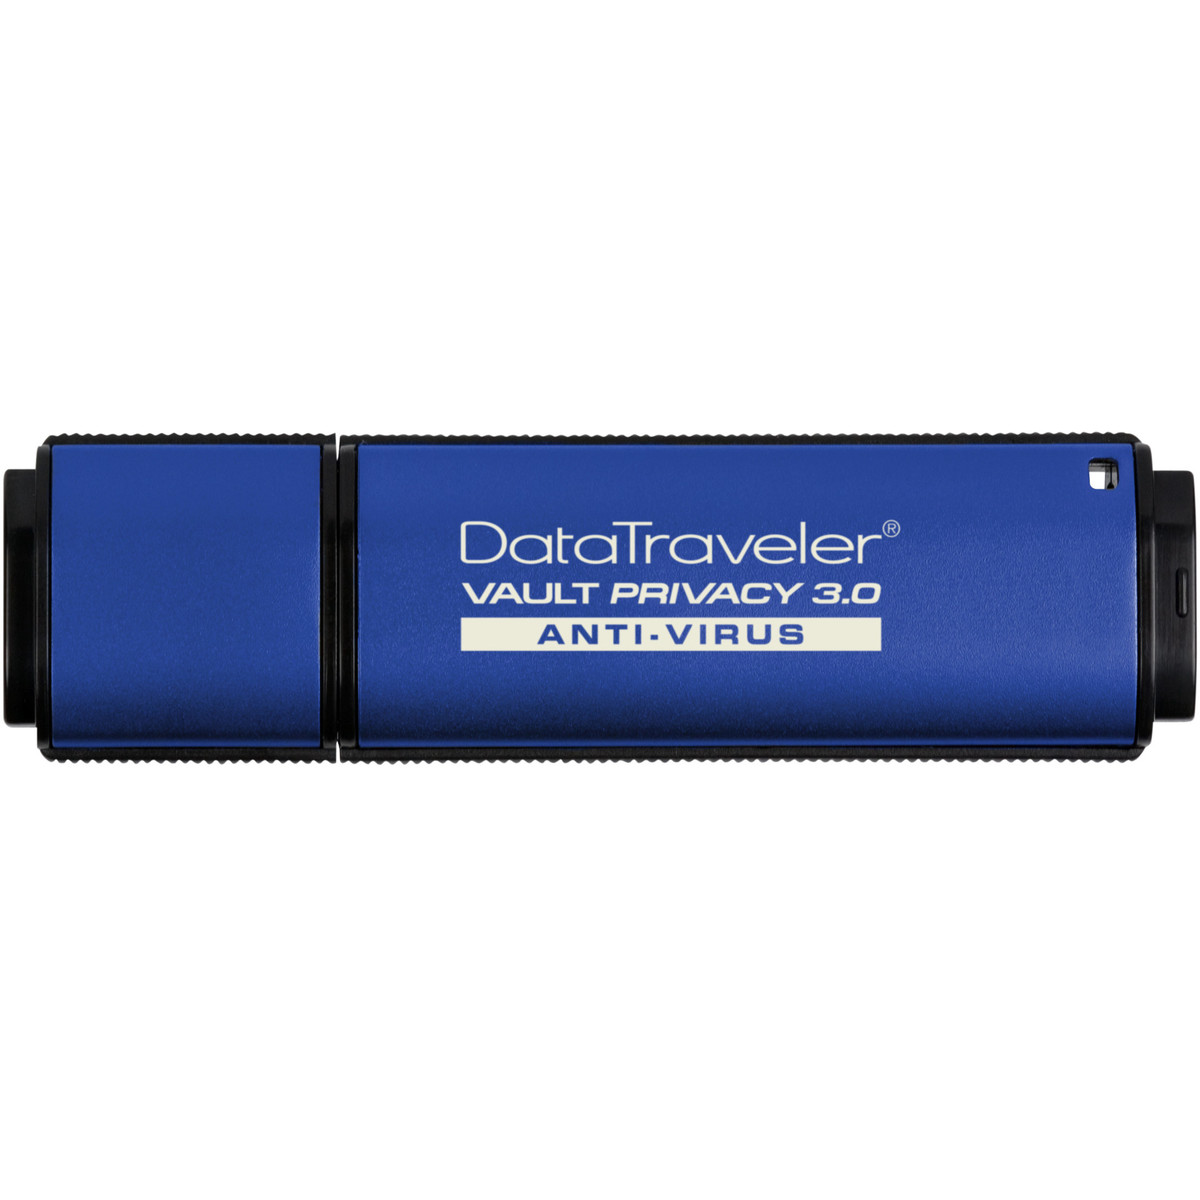 Memorie USB memorie USB 3.0 DataTraveler DTVP30AV/32GB Vault Privacy Anti-virus 32GB